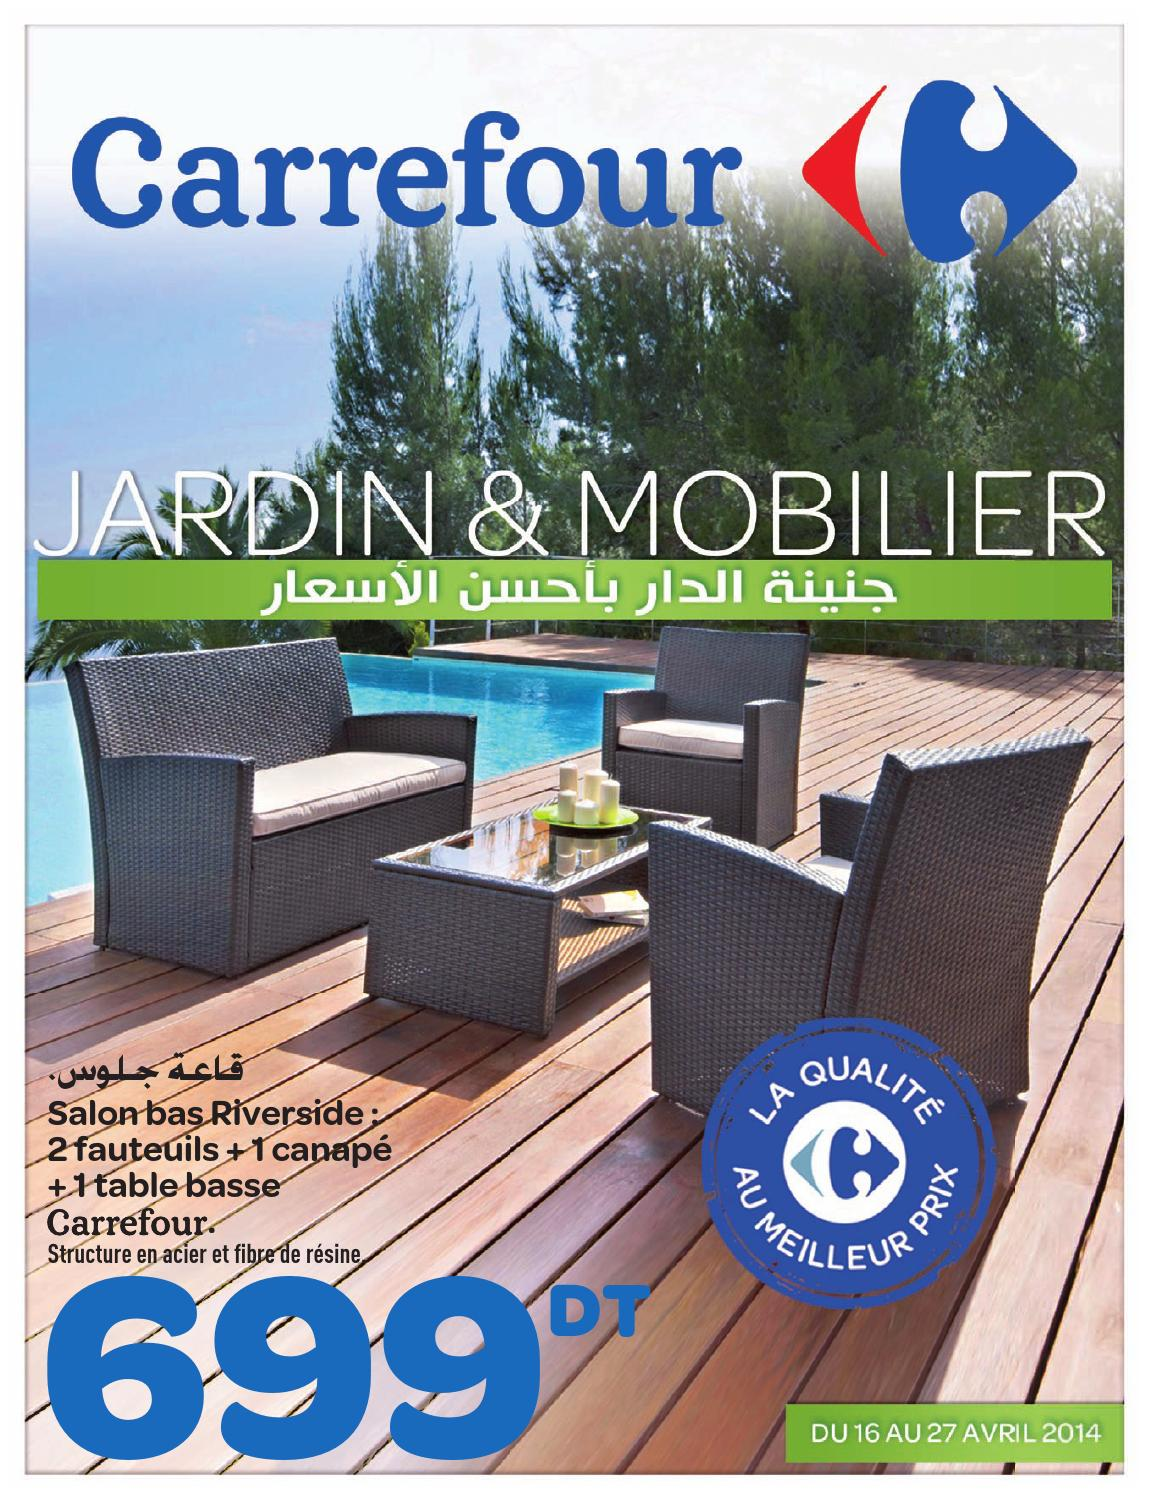 Catalogue carrefour jardin et mobilier by carrefour tunisie for Inter meuble tunisie catalogue 2014